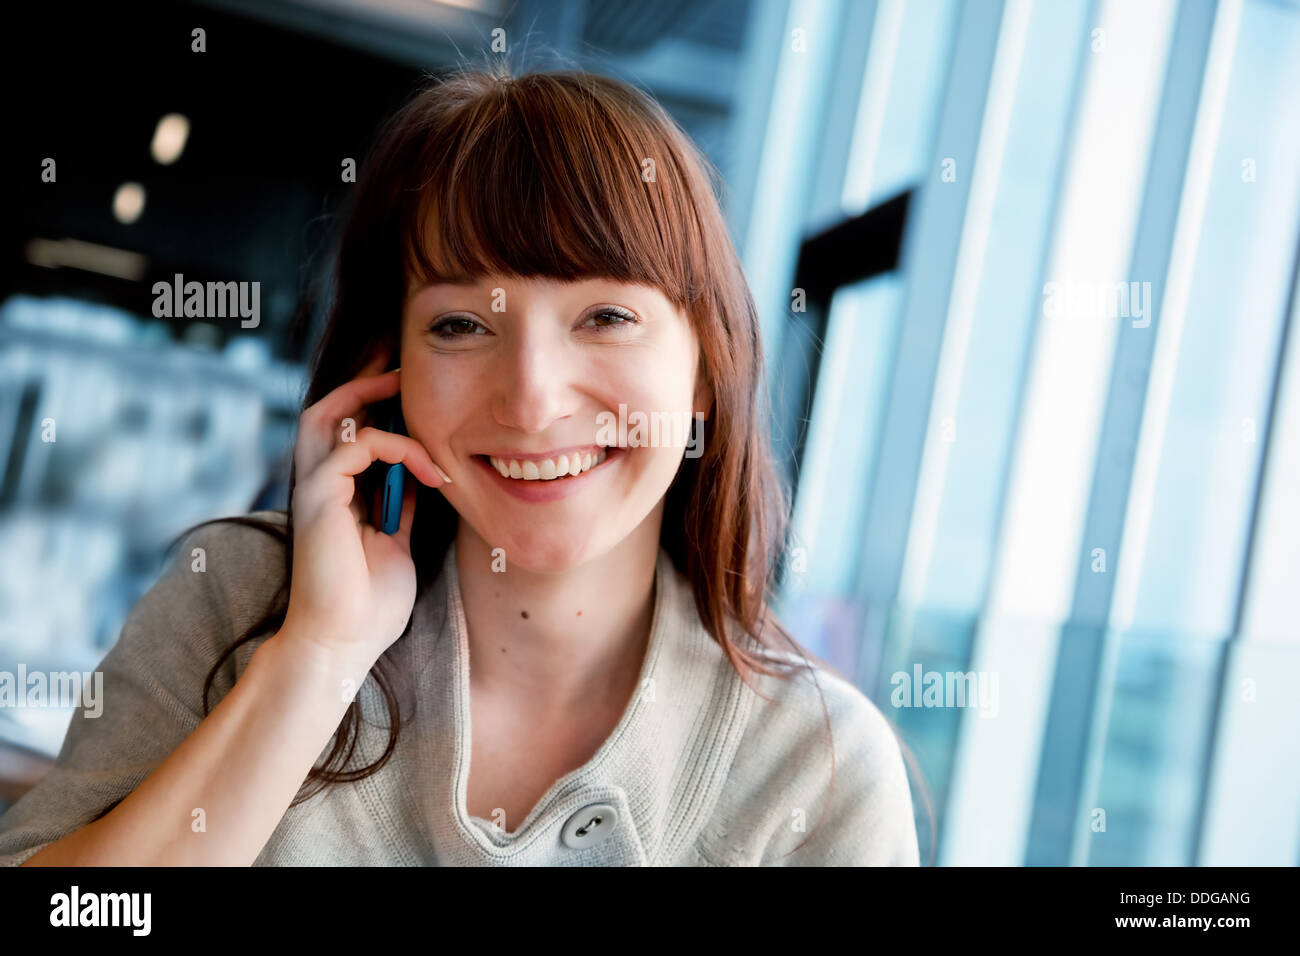 Woman talking on mobile phone and smiling, looking at camera - Stock Image